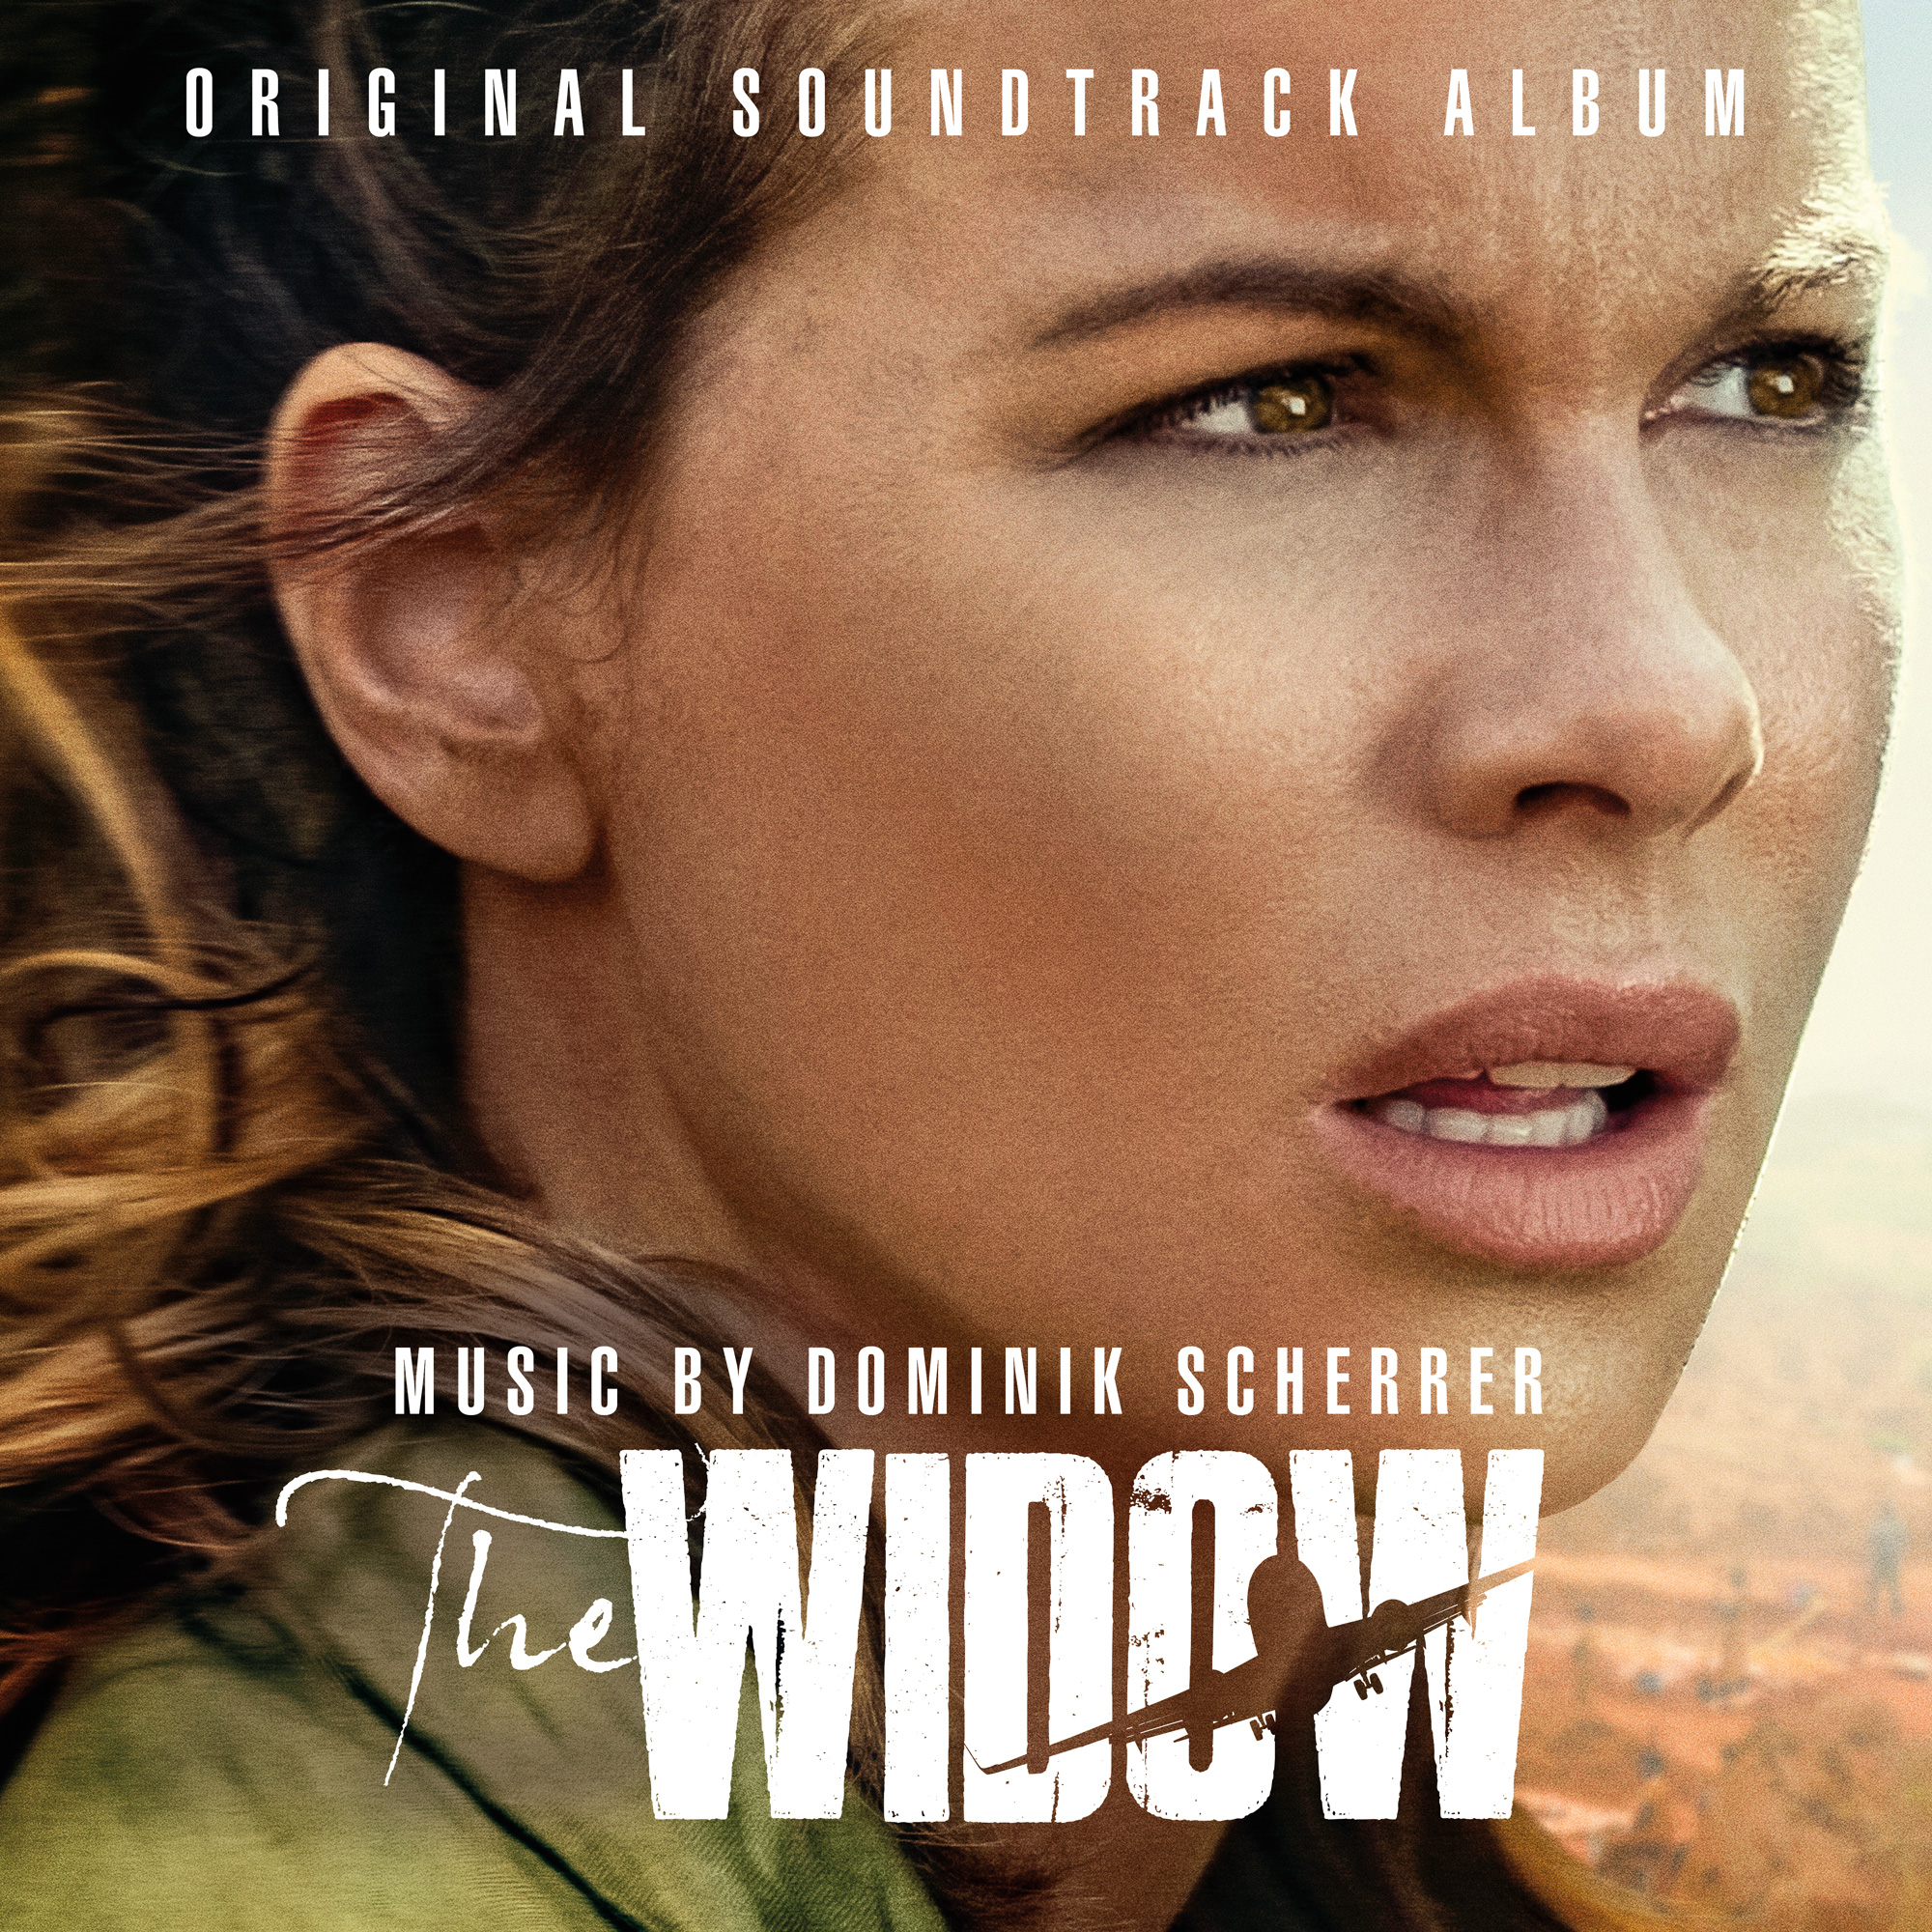 The-Widow---Original-Sountrack-Album--v4-2000px.jpg